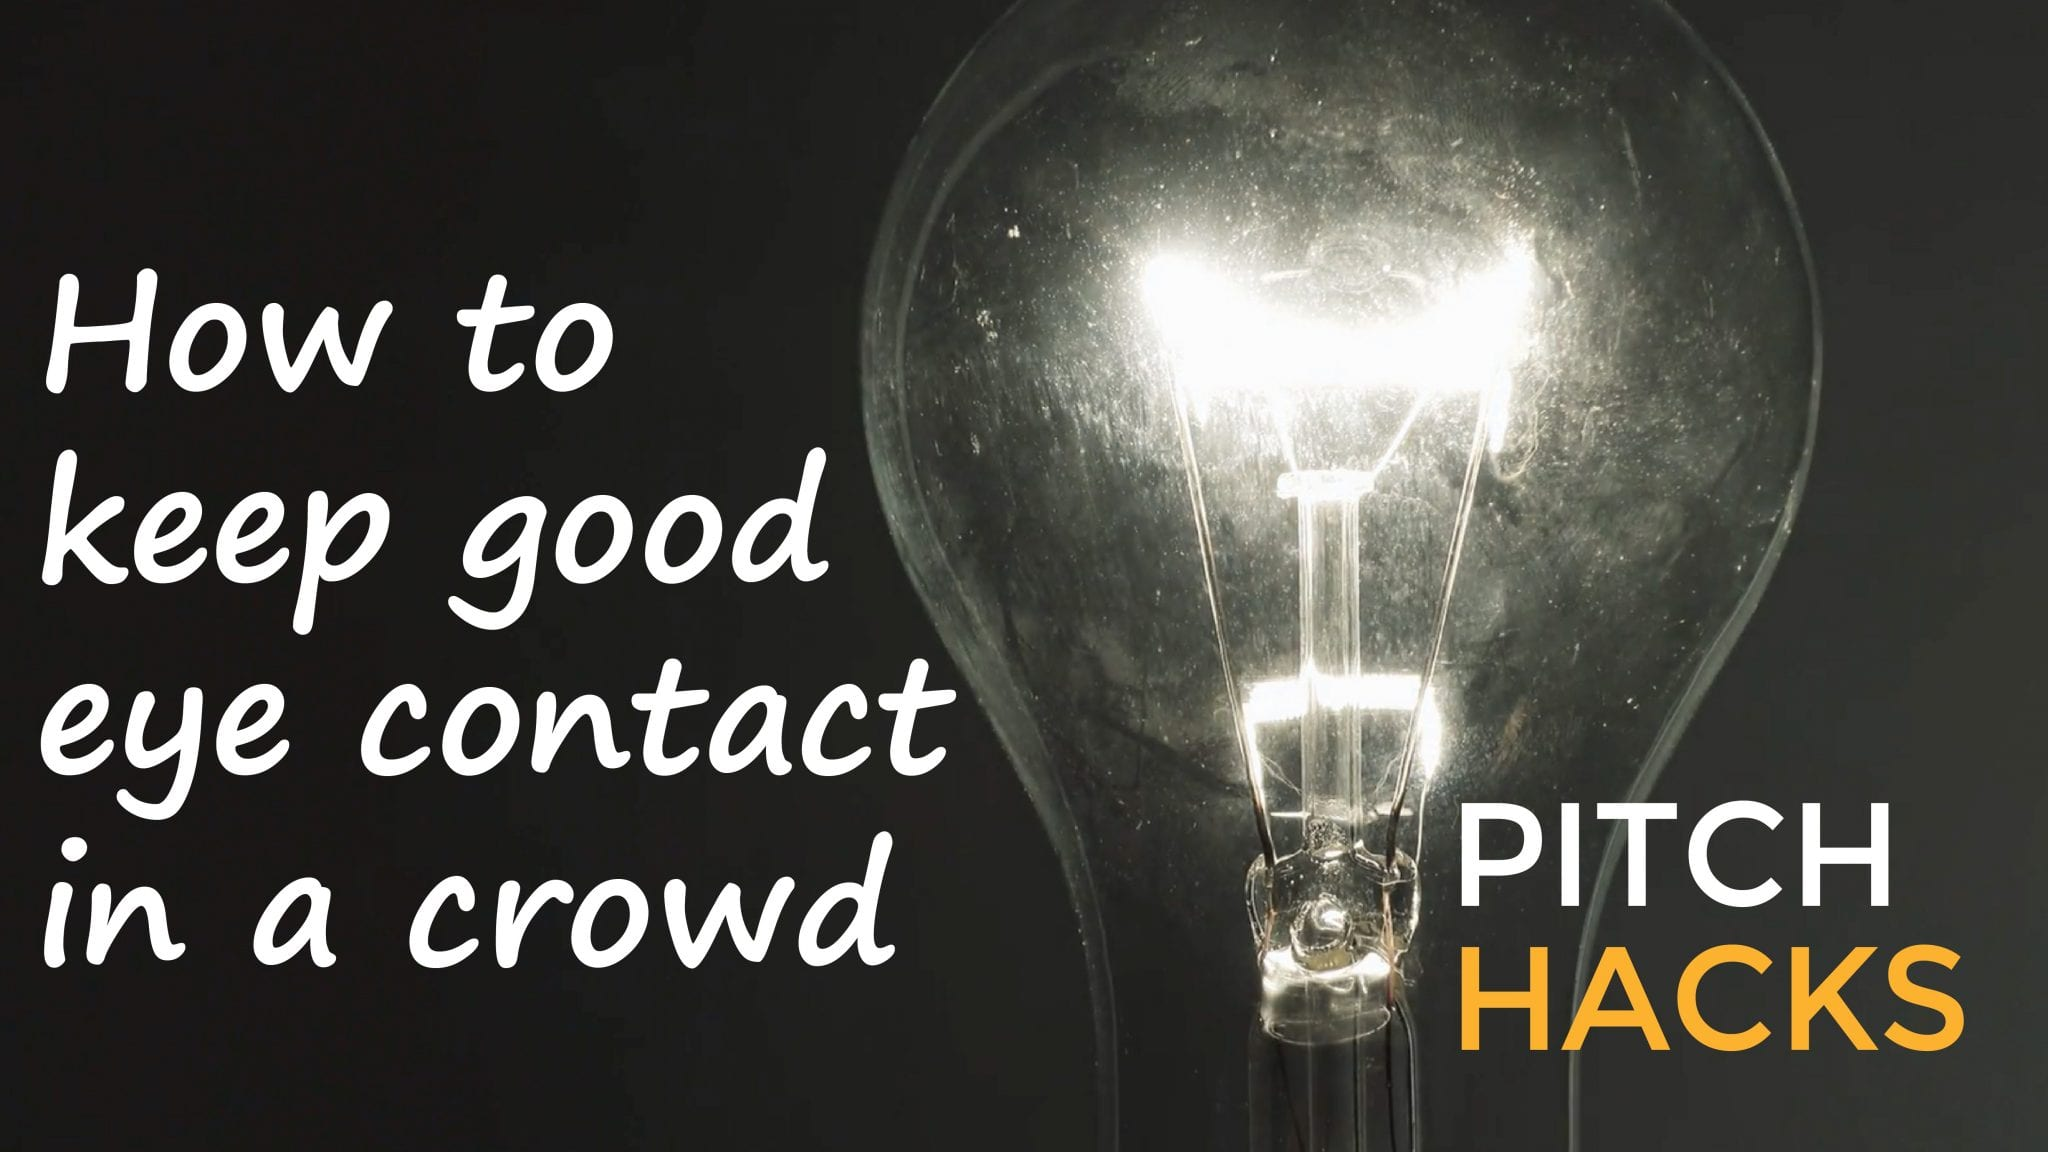 Keep good eye contact during pitch